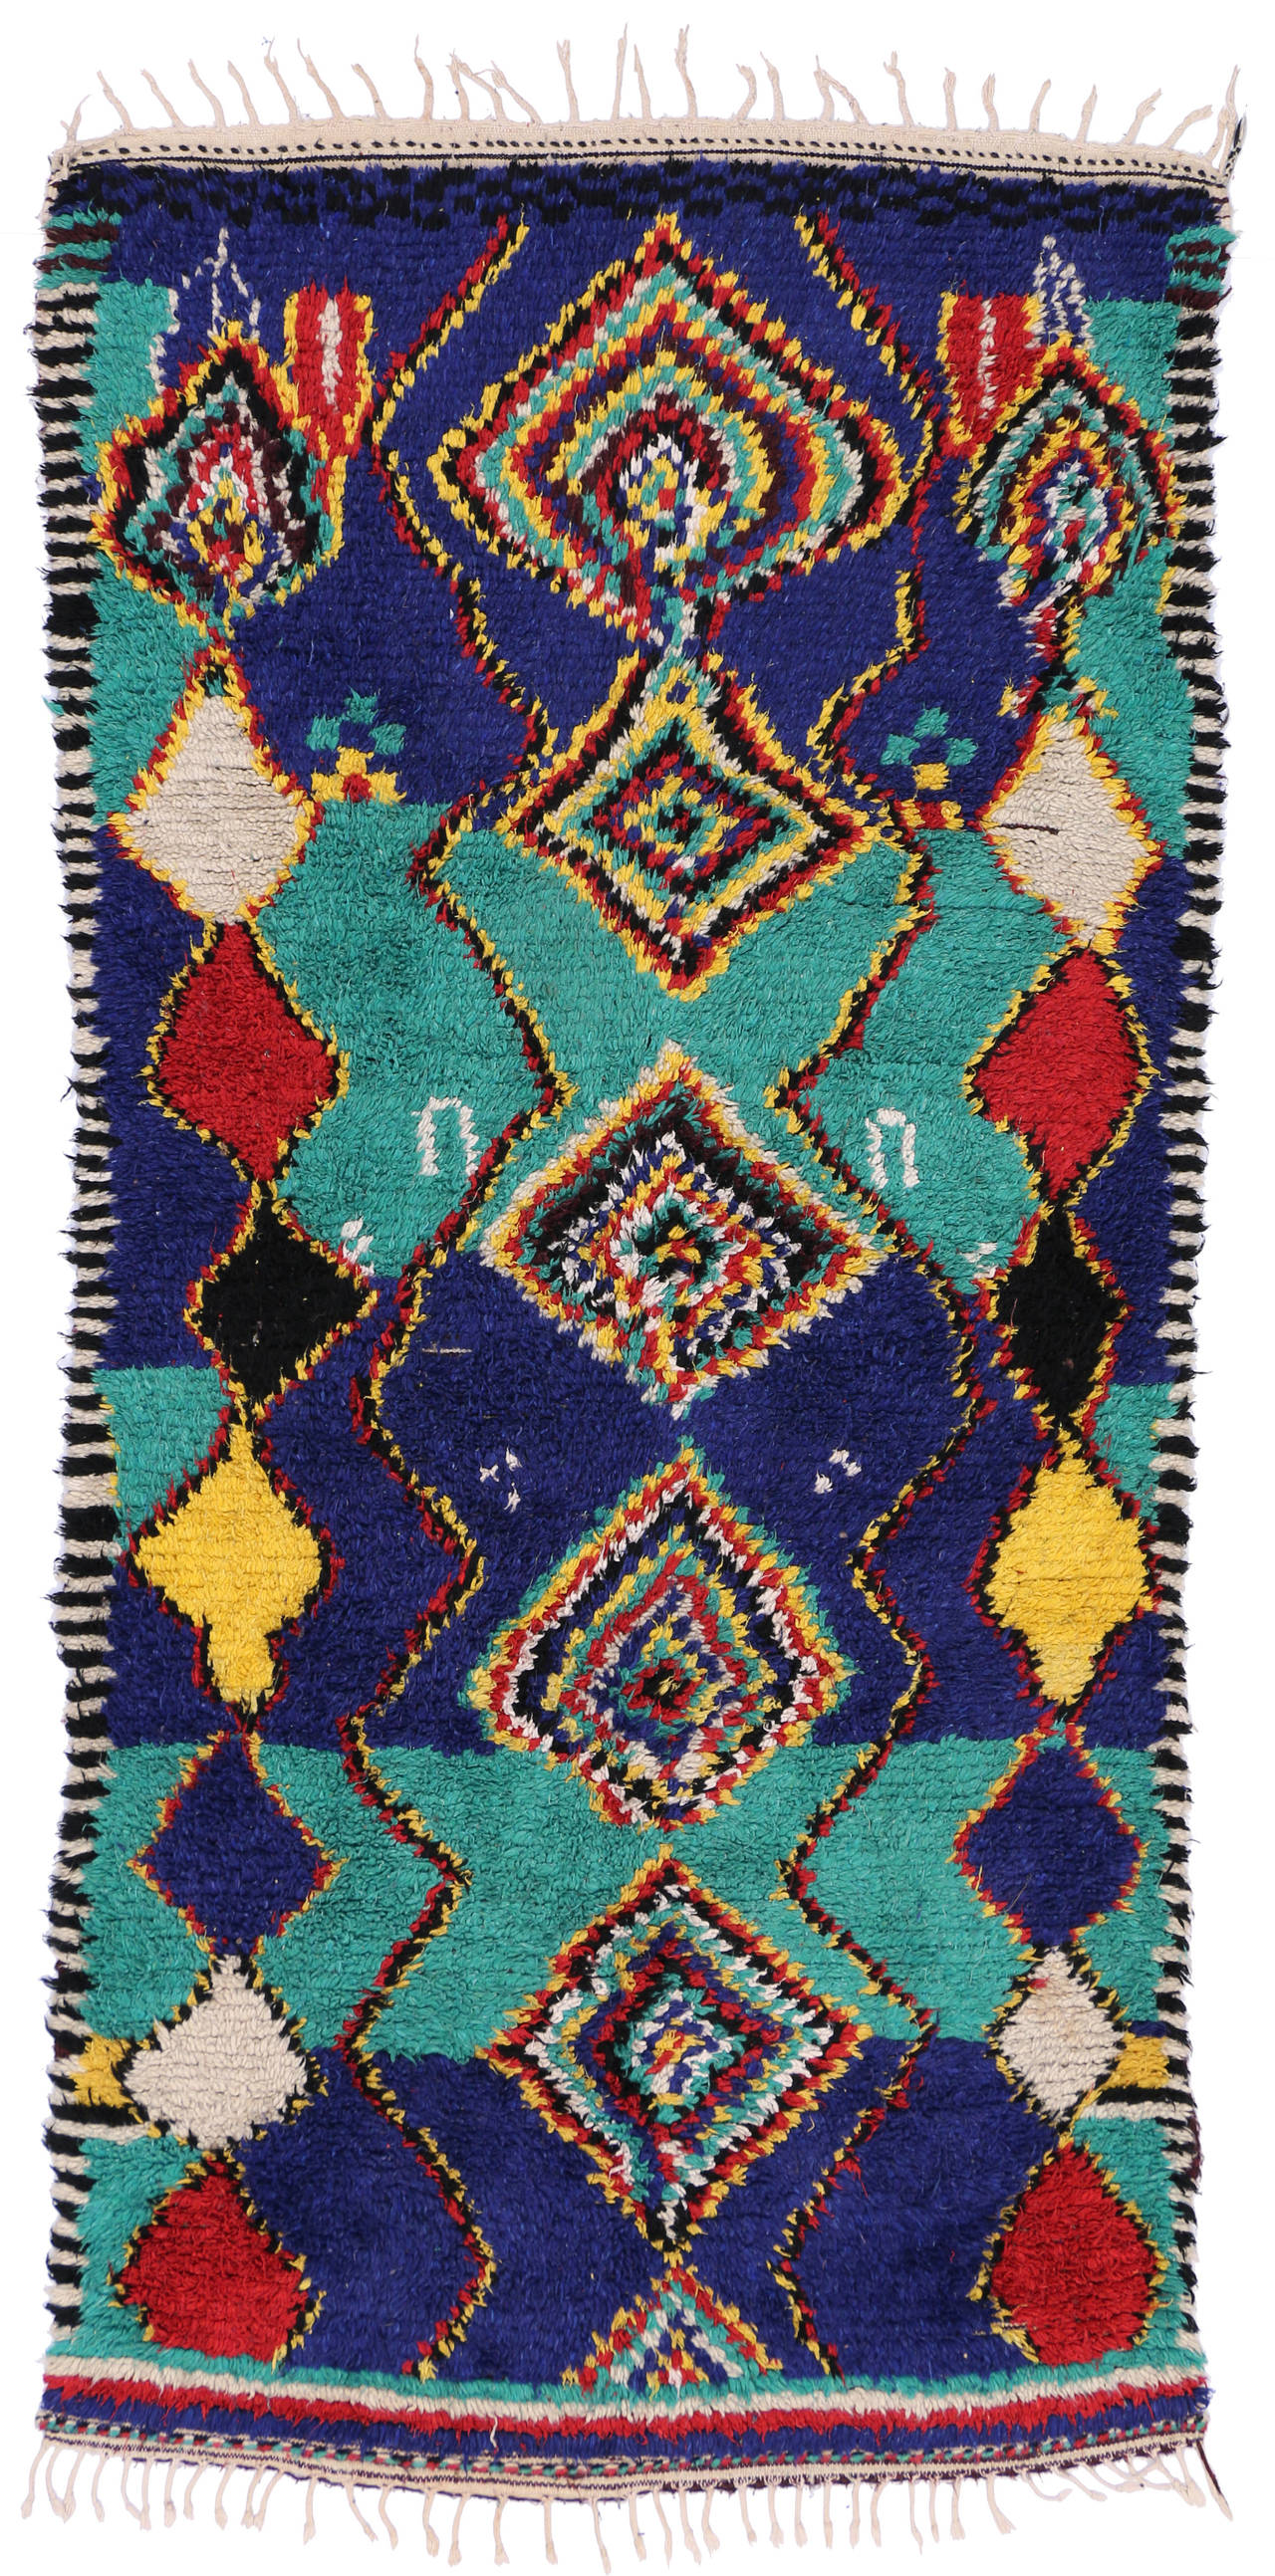 Contemporary Berber Moroccan Rug with Post-Modern Bauhaus Style For Sale 2